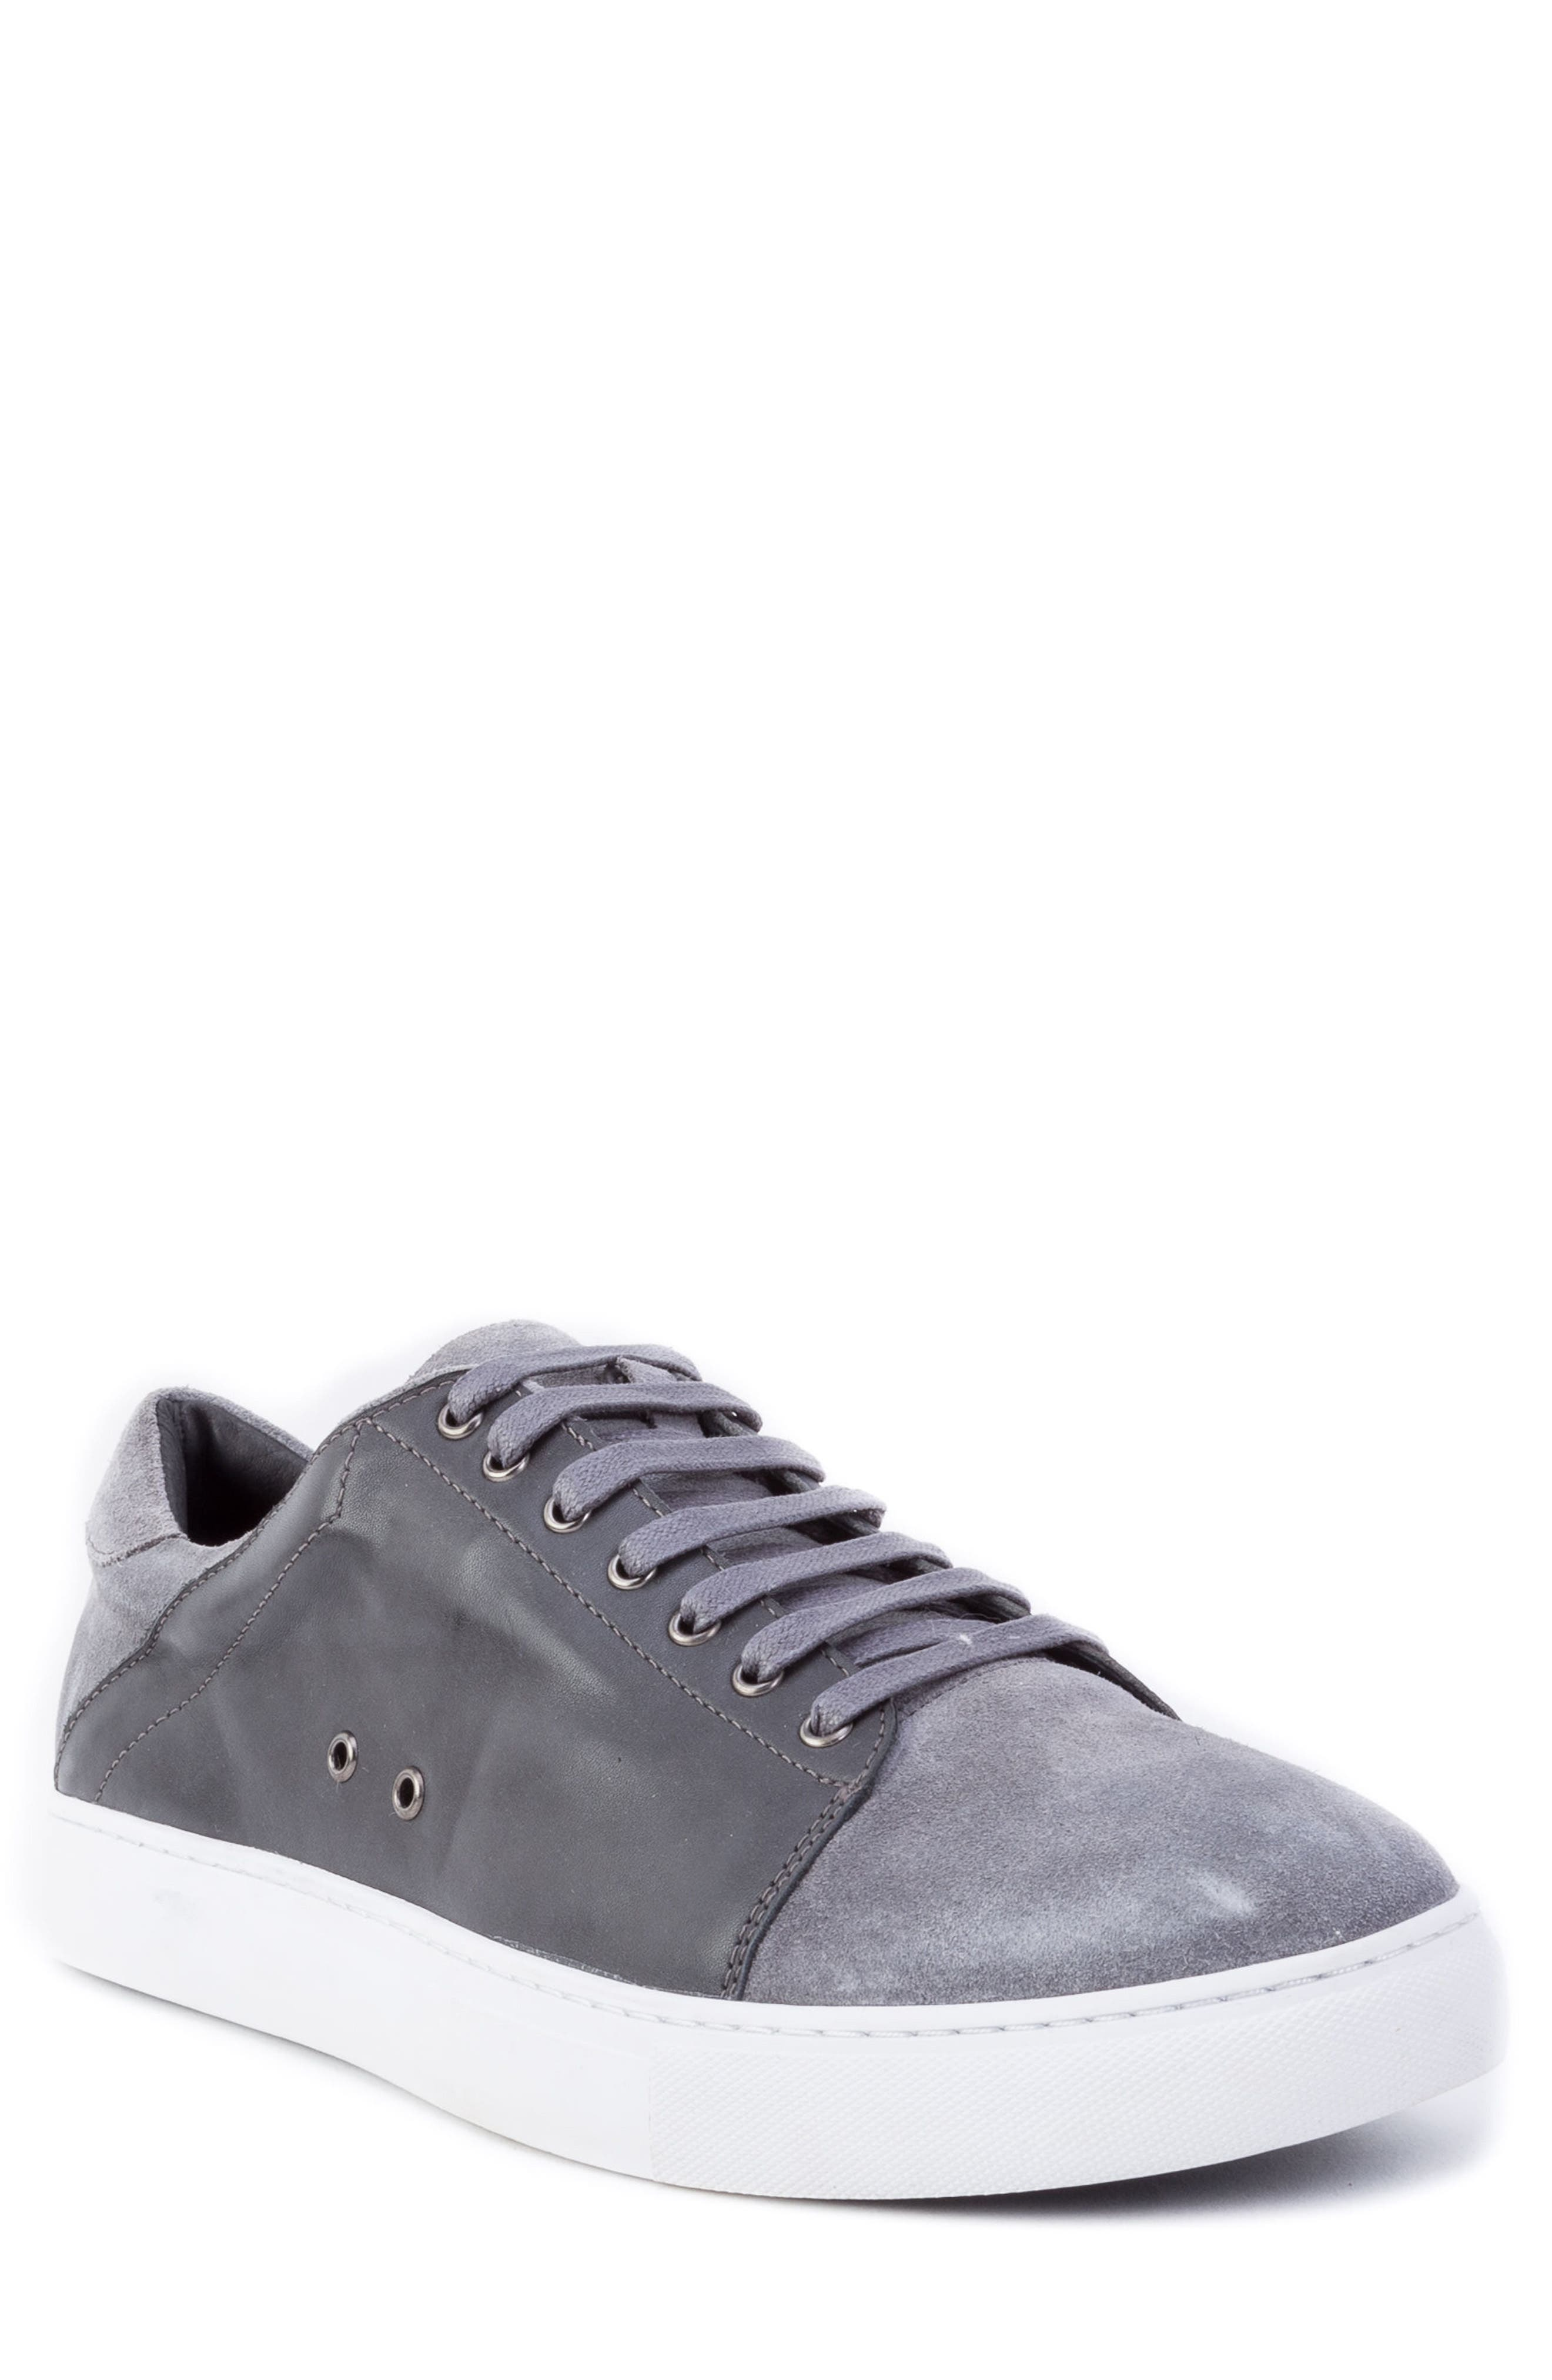 Record Low Top Sneaker,                             Main thumbnail 1, color,                             Grey Suede/ Leather